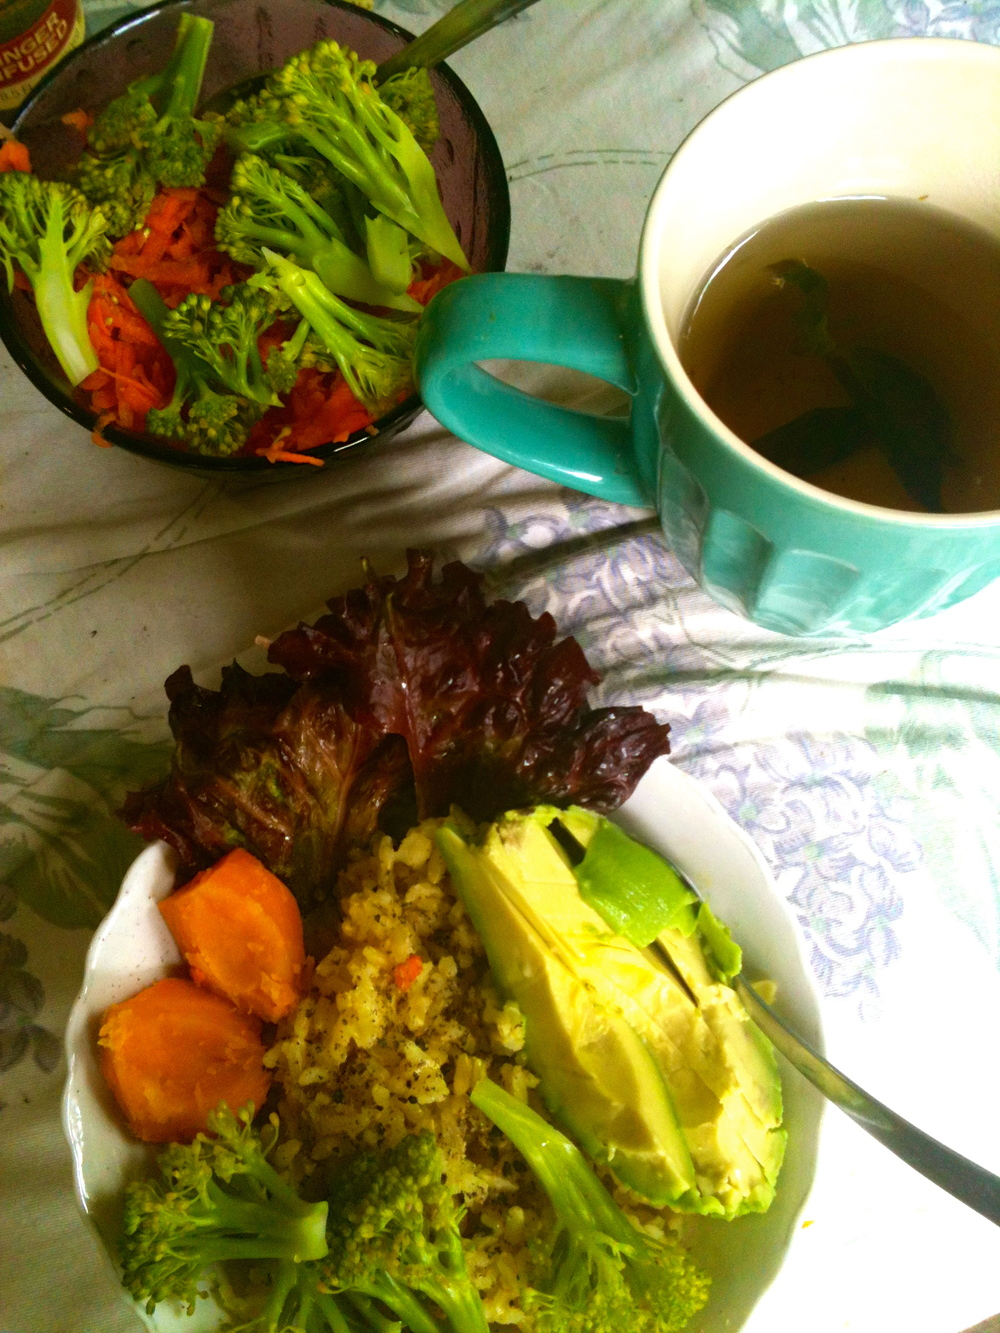 Organic veggies from local farmers in Puerto Viejo, Costa Rica & Chamomile tea